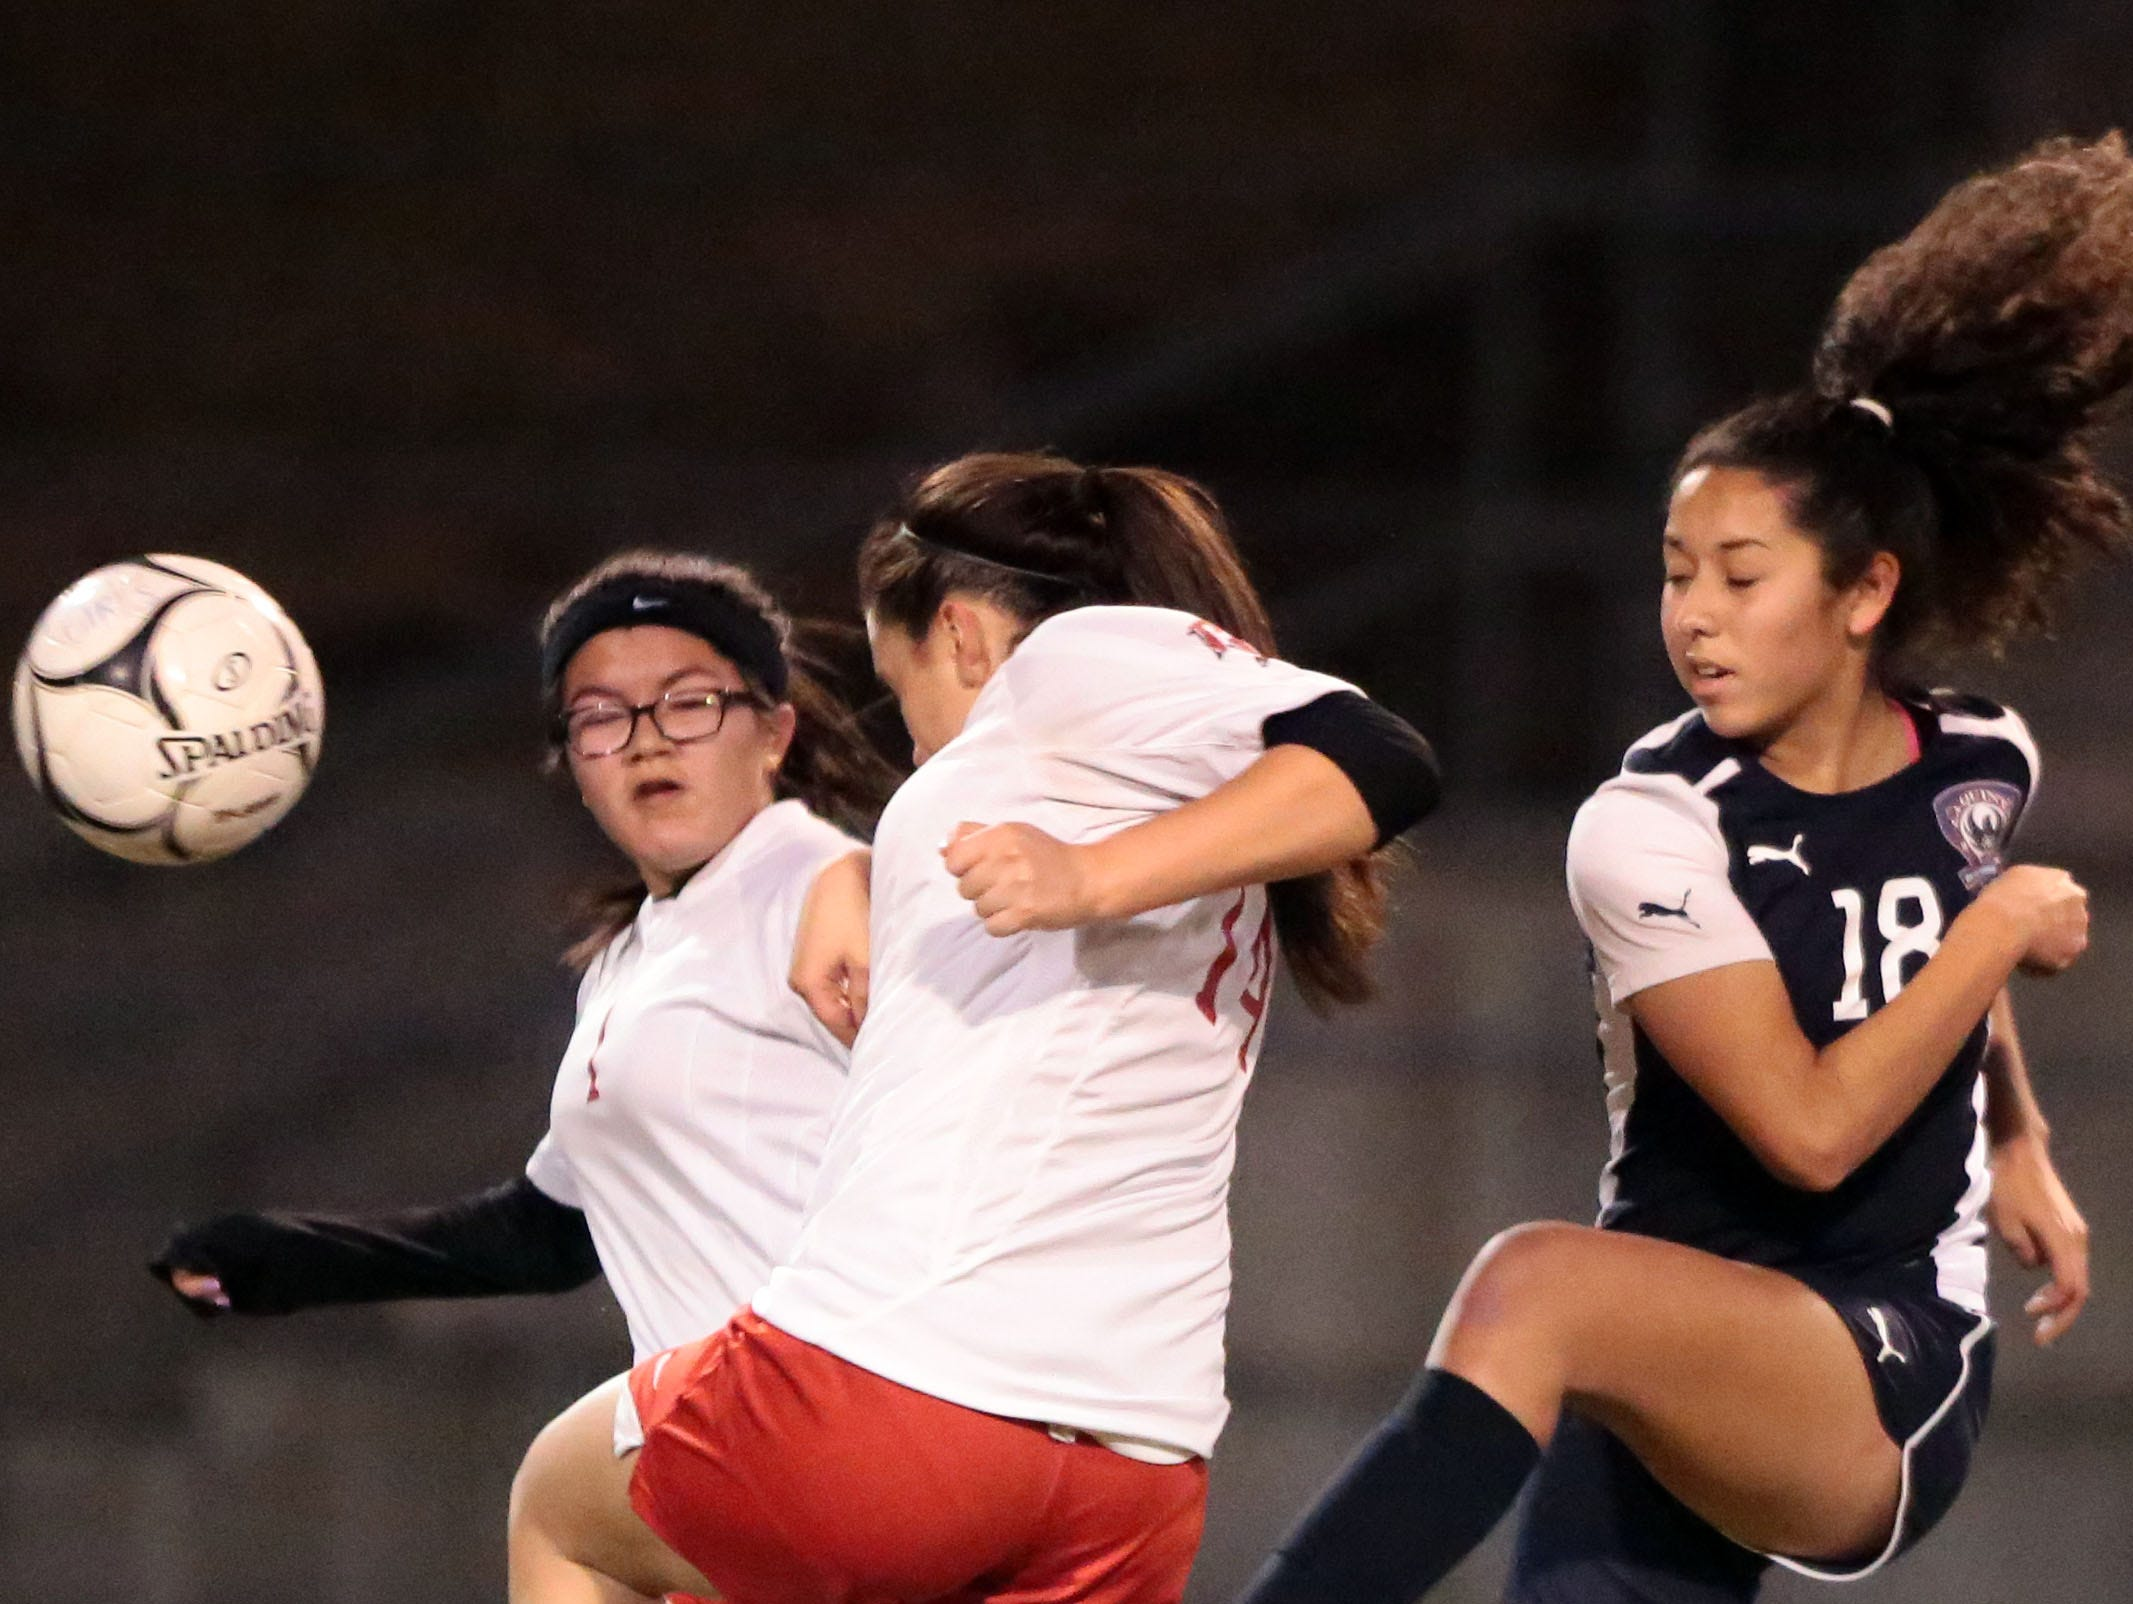 La Quinta and Palm Springs soccer action on Tuesday, January 12, 2016 in Palm Springs